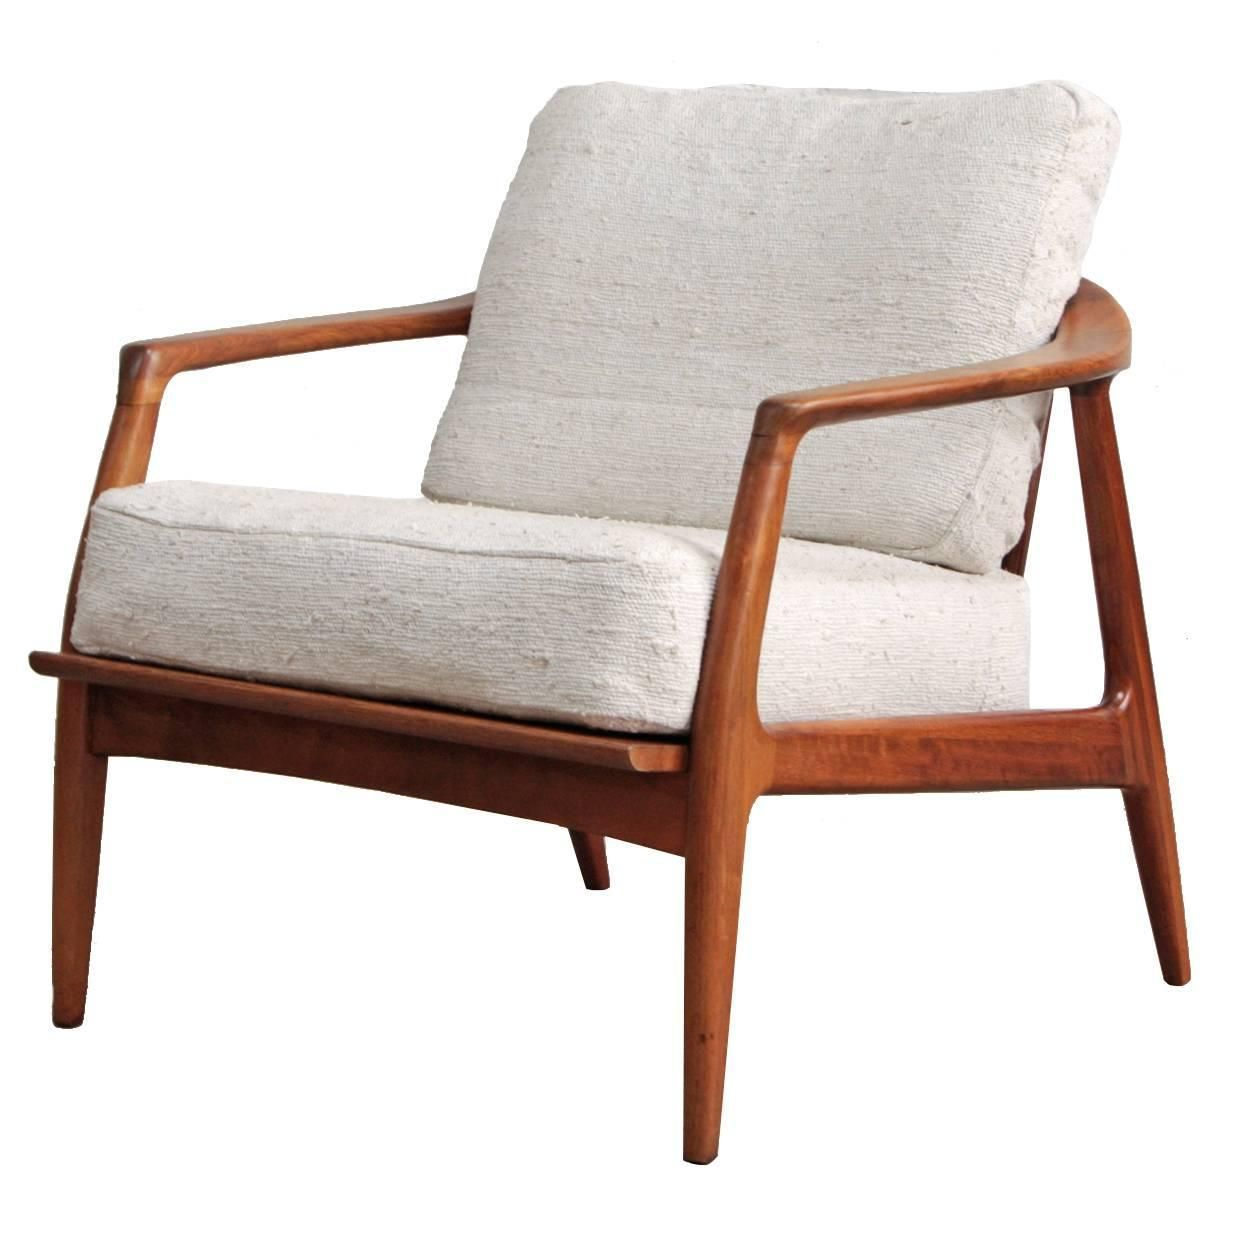 Milo Baughman Teak Lounge Chair From A Unique Collection Of Antique And Modern Chairs At Http Teak Lounge Chair Mid Century Modern Lounge Chairs Retro Chair